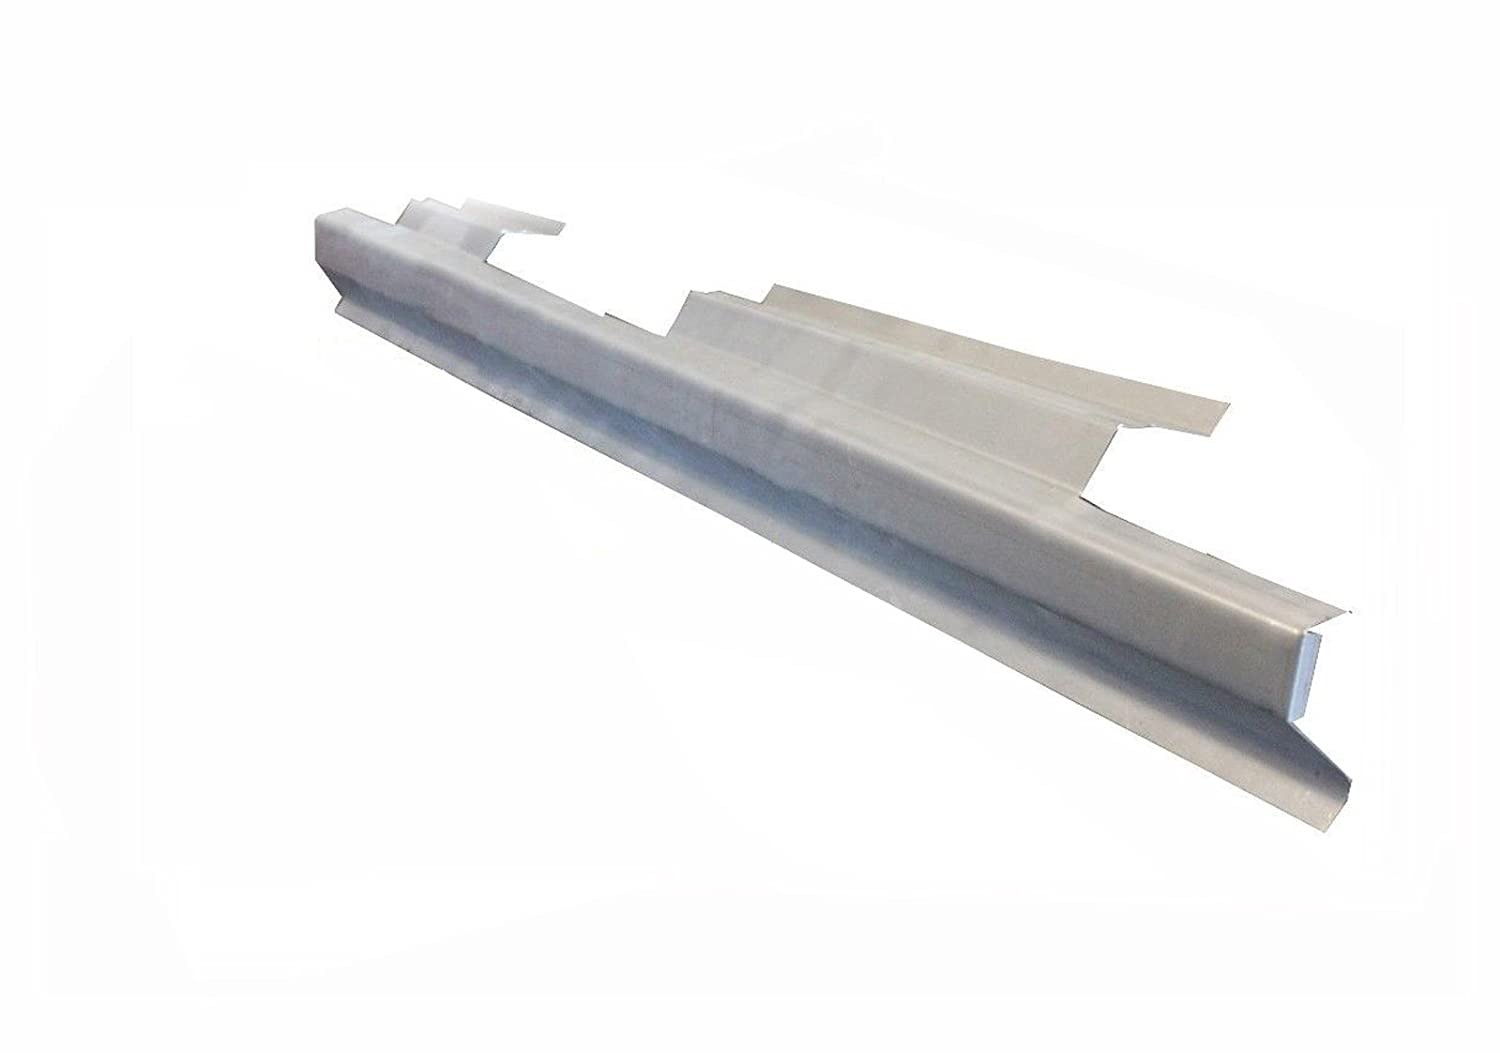 Motor City Sheet Metal - 1997-05 Works With BUICK CENTURY AND REGAL 4DR OUTER ROCKER PANEL PASSENGER SIDE